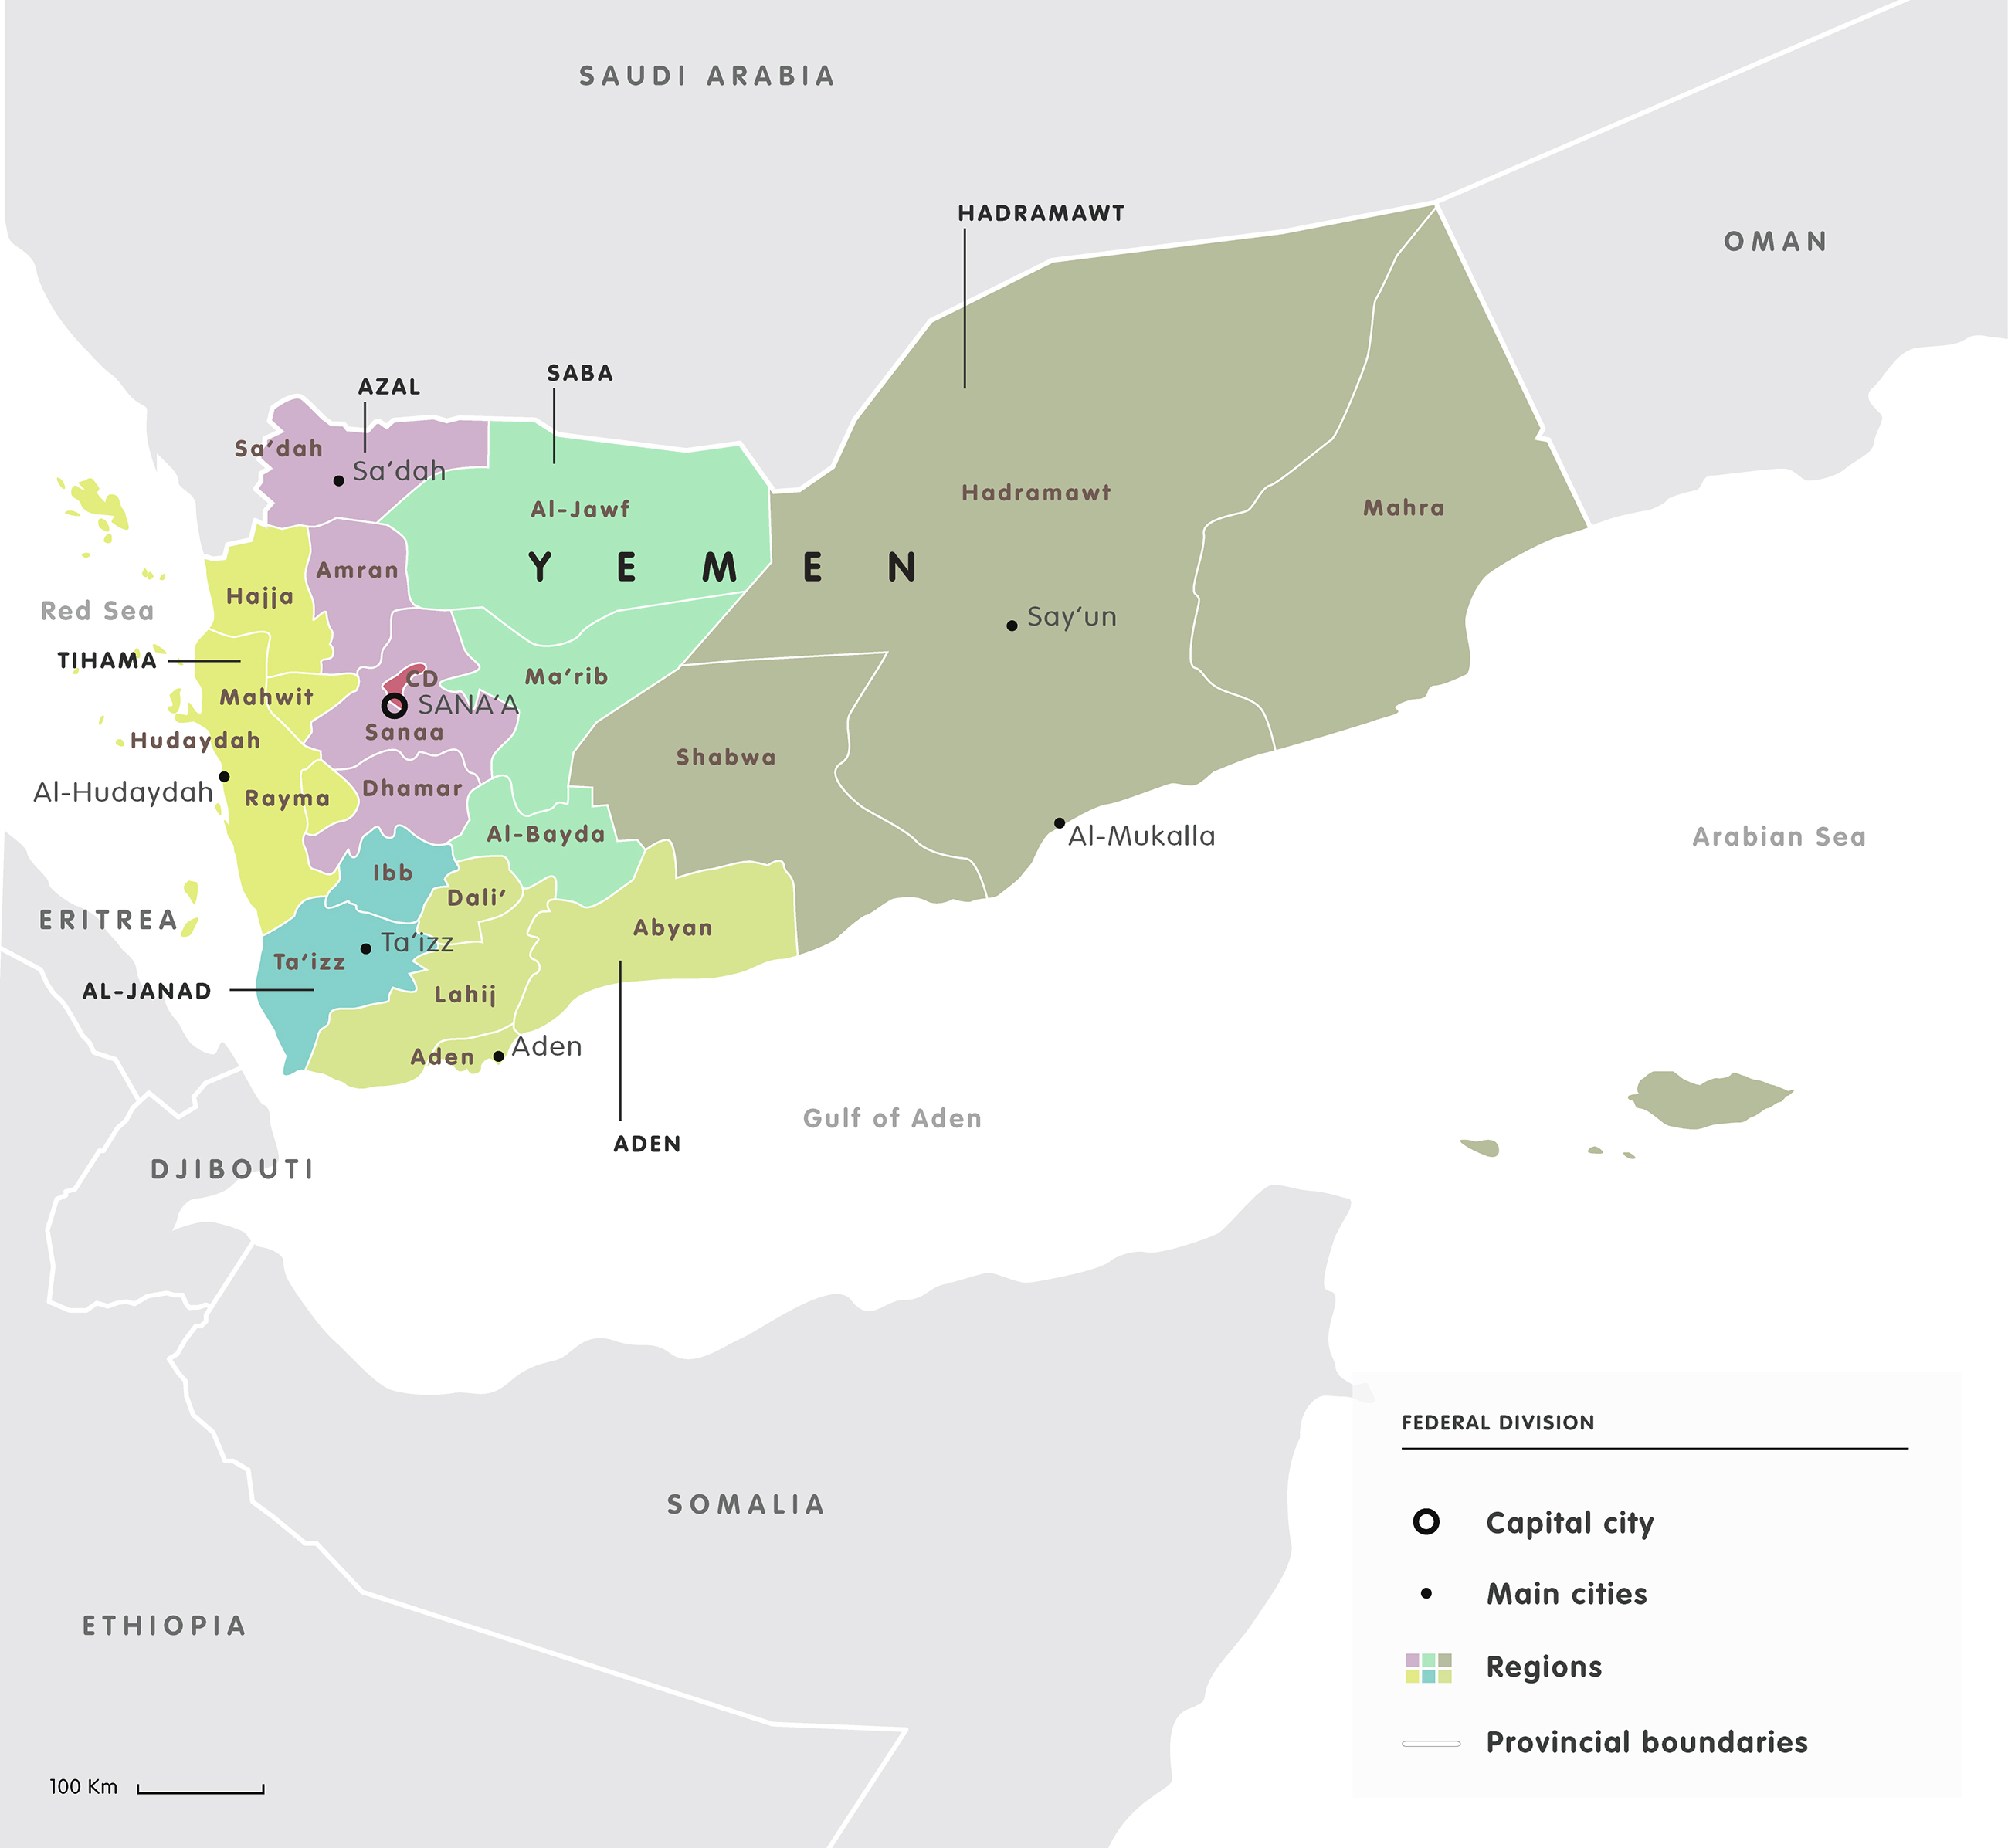 Mapping the Yemen conflict | European Council on Foreign Relations on asia location on map, yemen africa, caribbean sea on world map, yemen on the map, yemen on a world map, prague location on map, yemen and world map, gulf of oman on world map, yemen country map, yemen geographical location, yemen socotra island map, yemen map middle east, yemen map google, yemen political map, sanaa yemen map, yemen province map, aden yemen map, yemen topographic map, north korea on world map, yemen airport map,